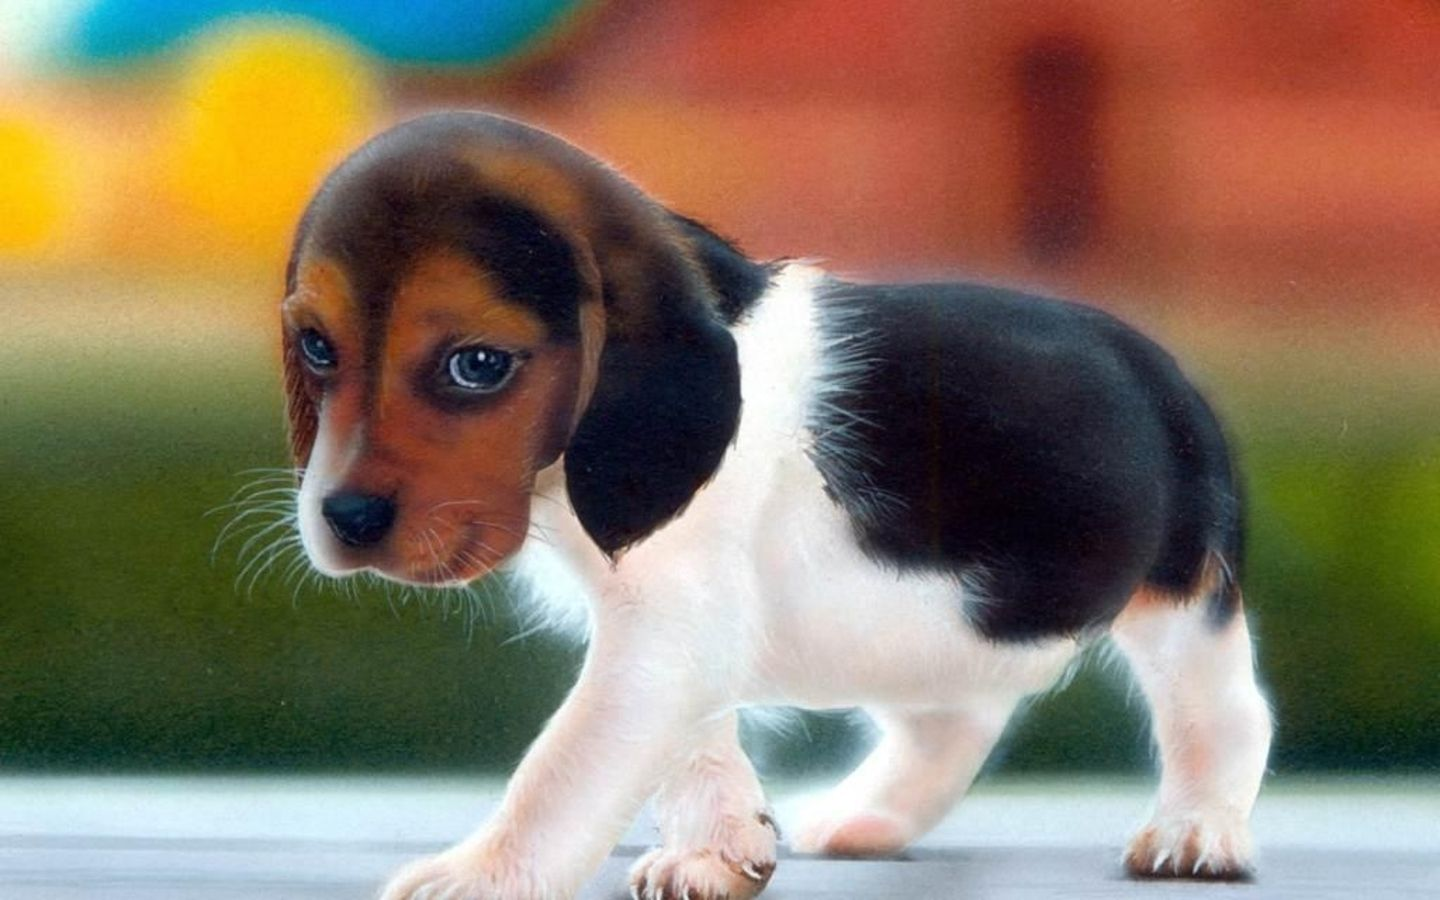 White Brown And Black Dog Cute Animal Pictures Cute Animals